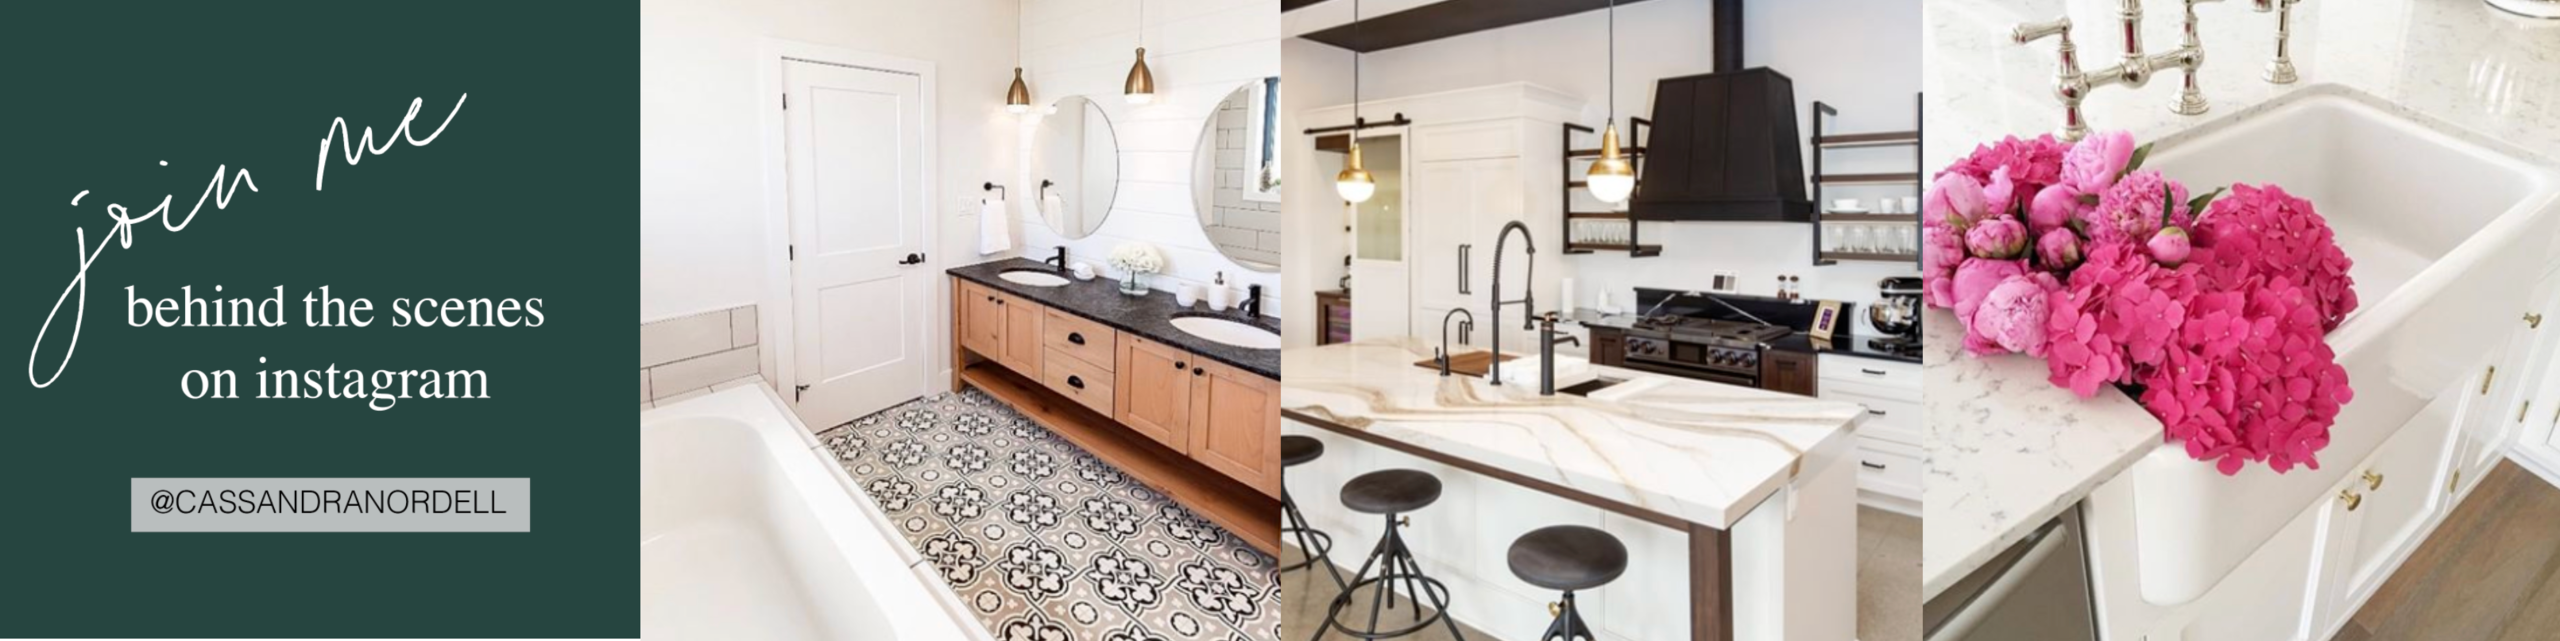 Images of kitchens and bathrooms designed by Cassandra.